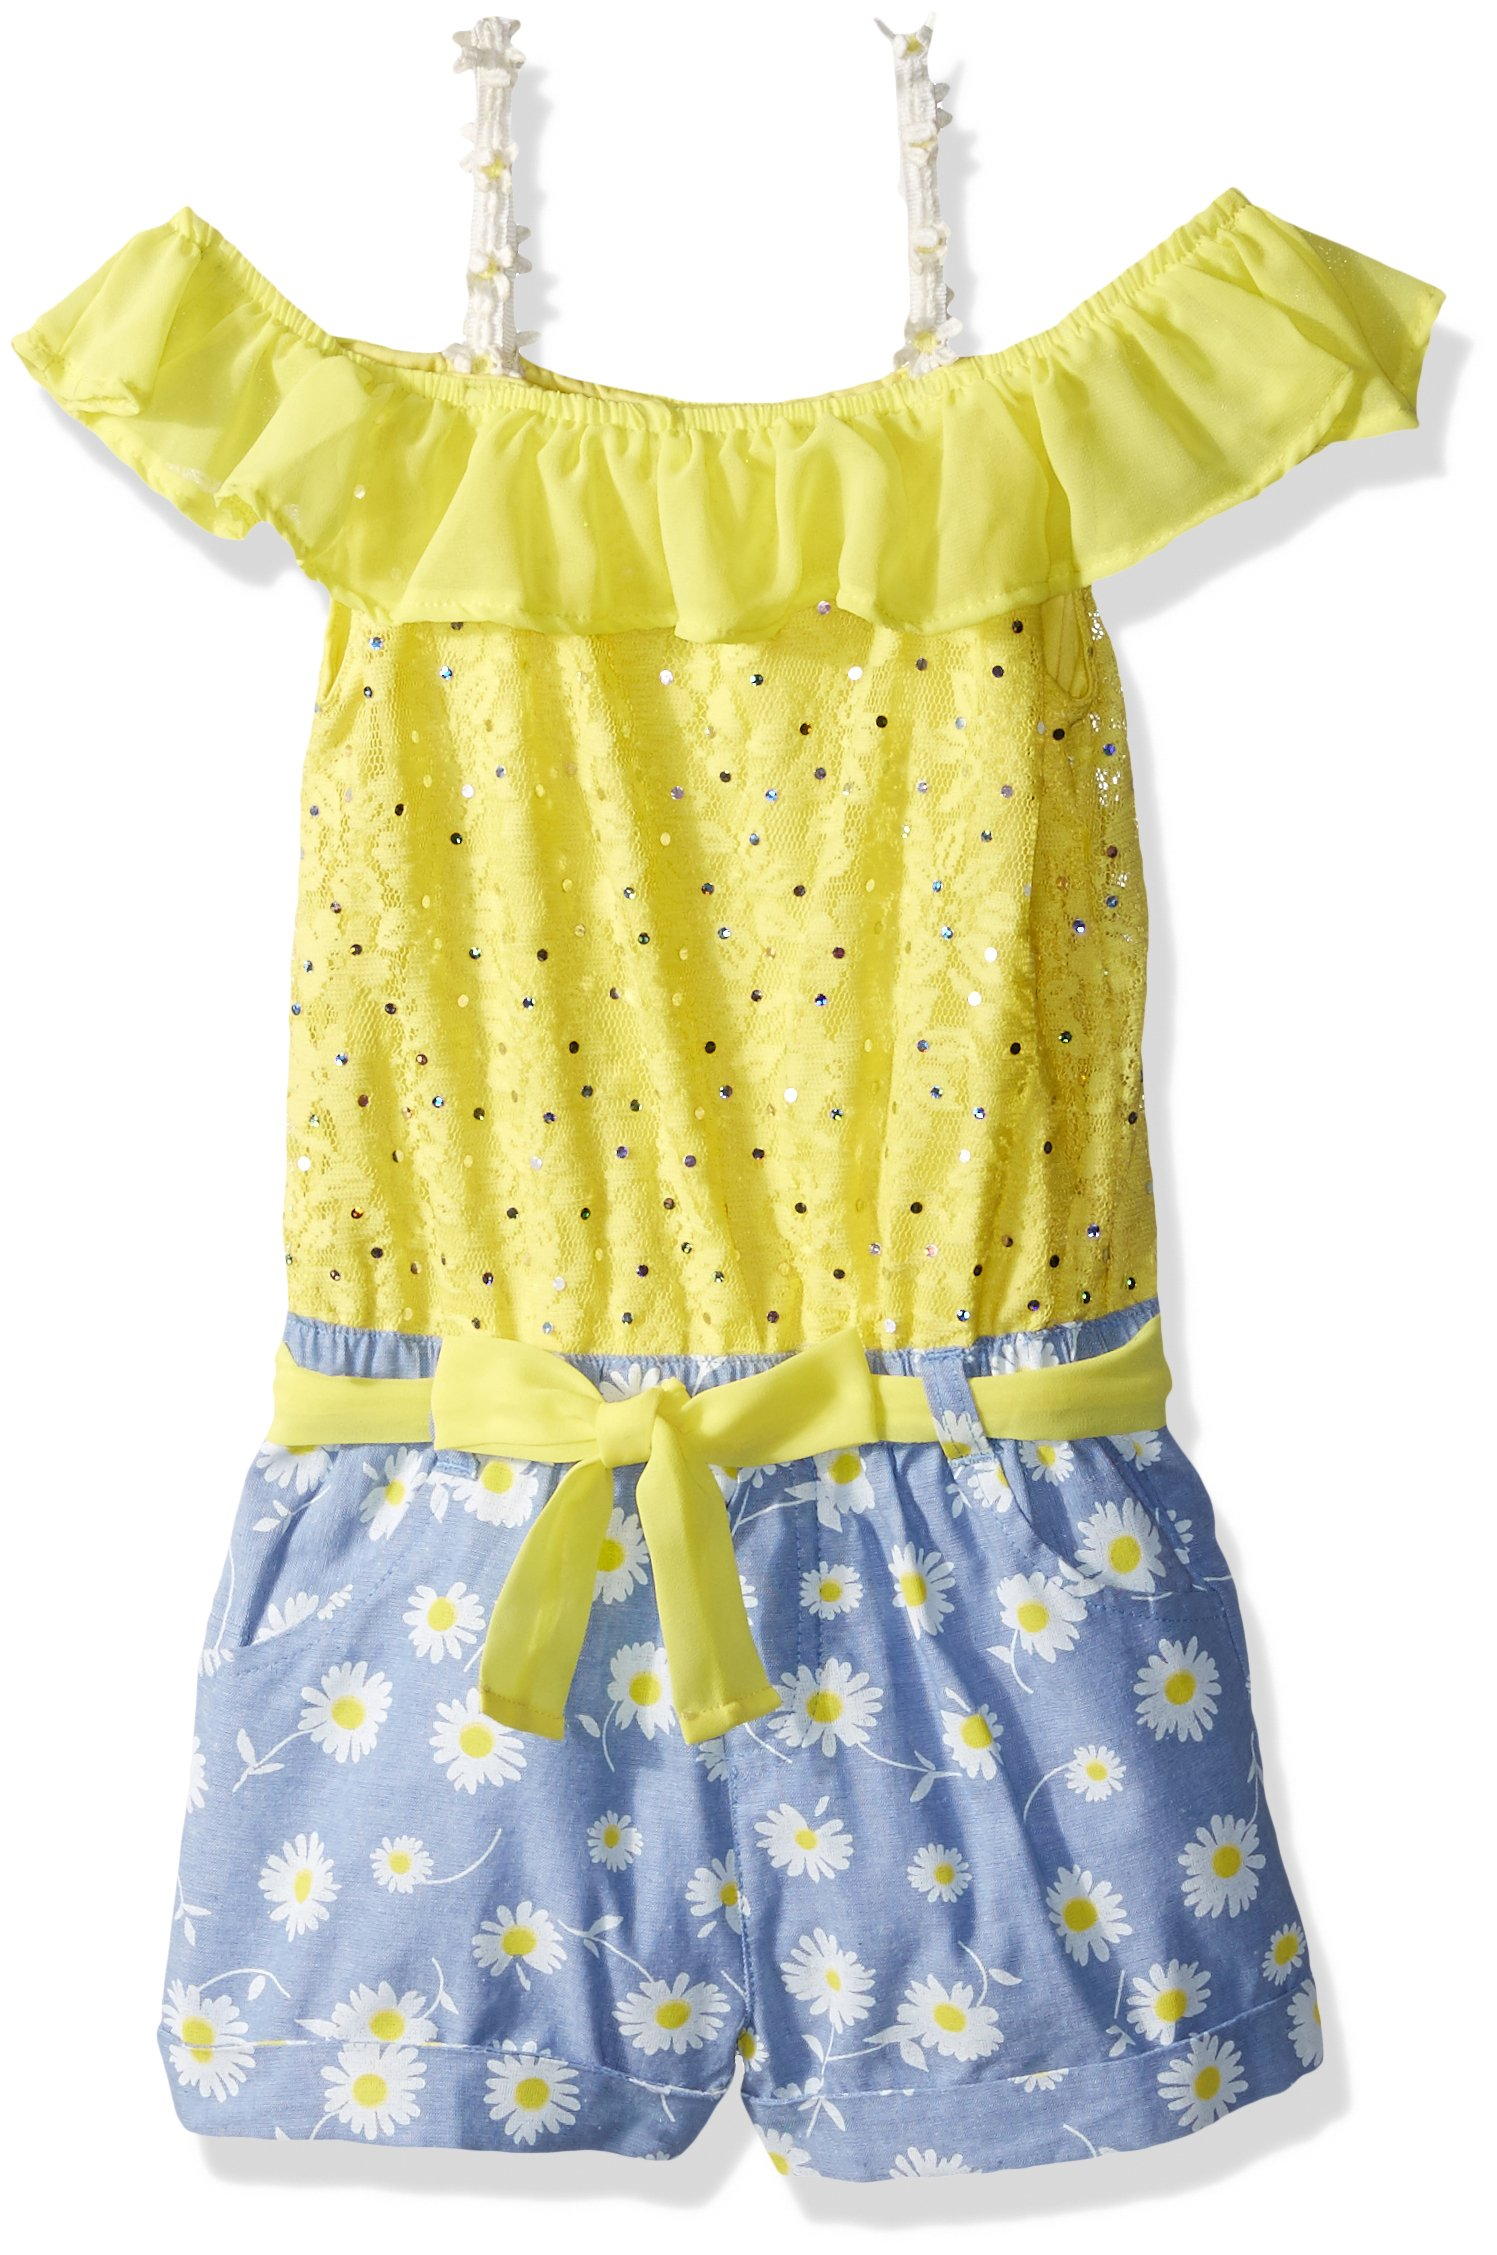 Little Lass Little Girls' 1 Pc Belted Daisy Romper, Yellow, 5